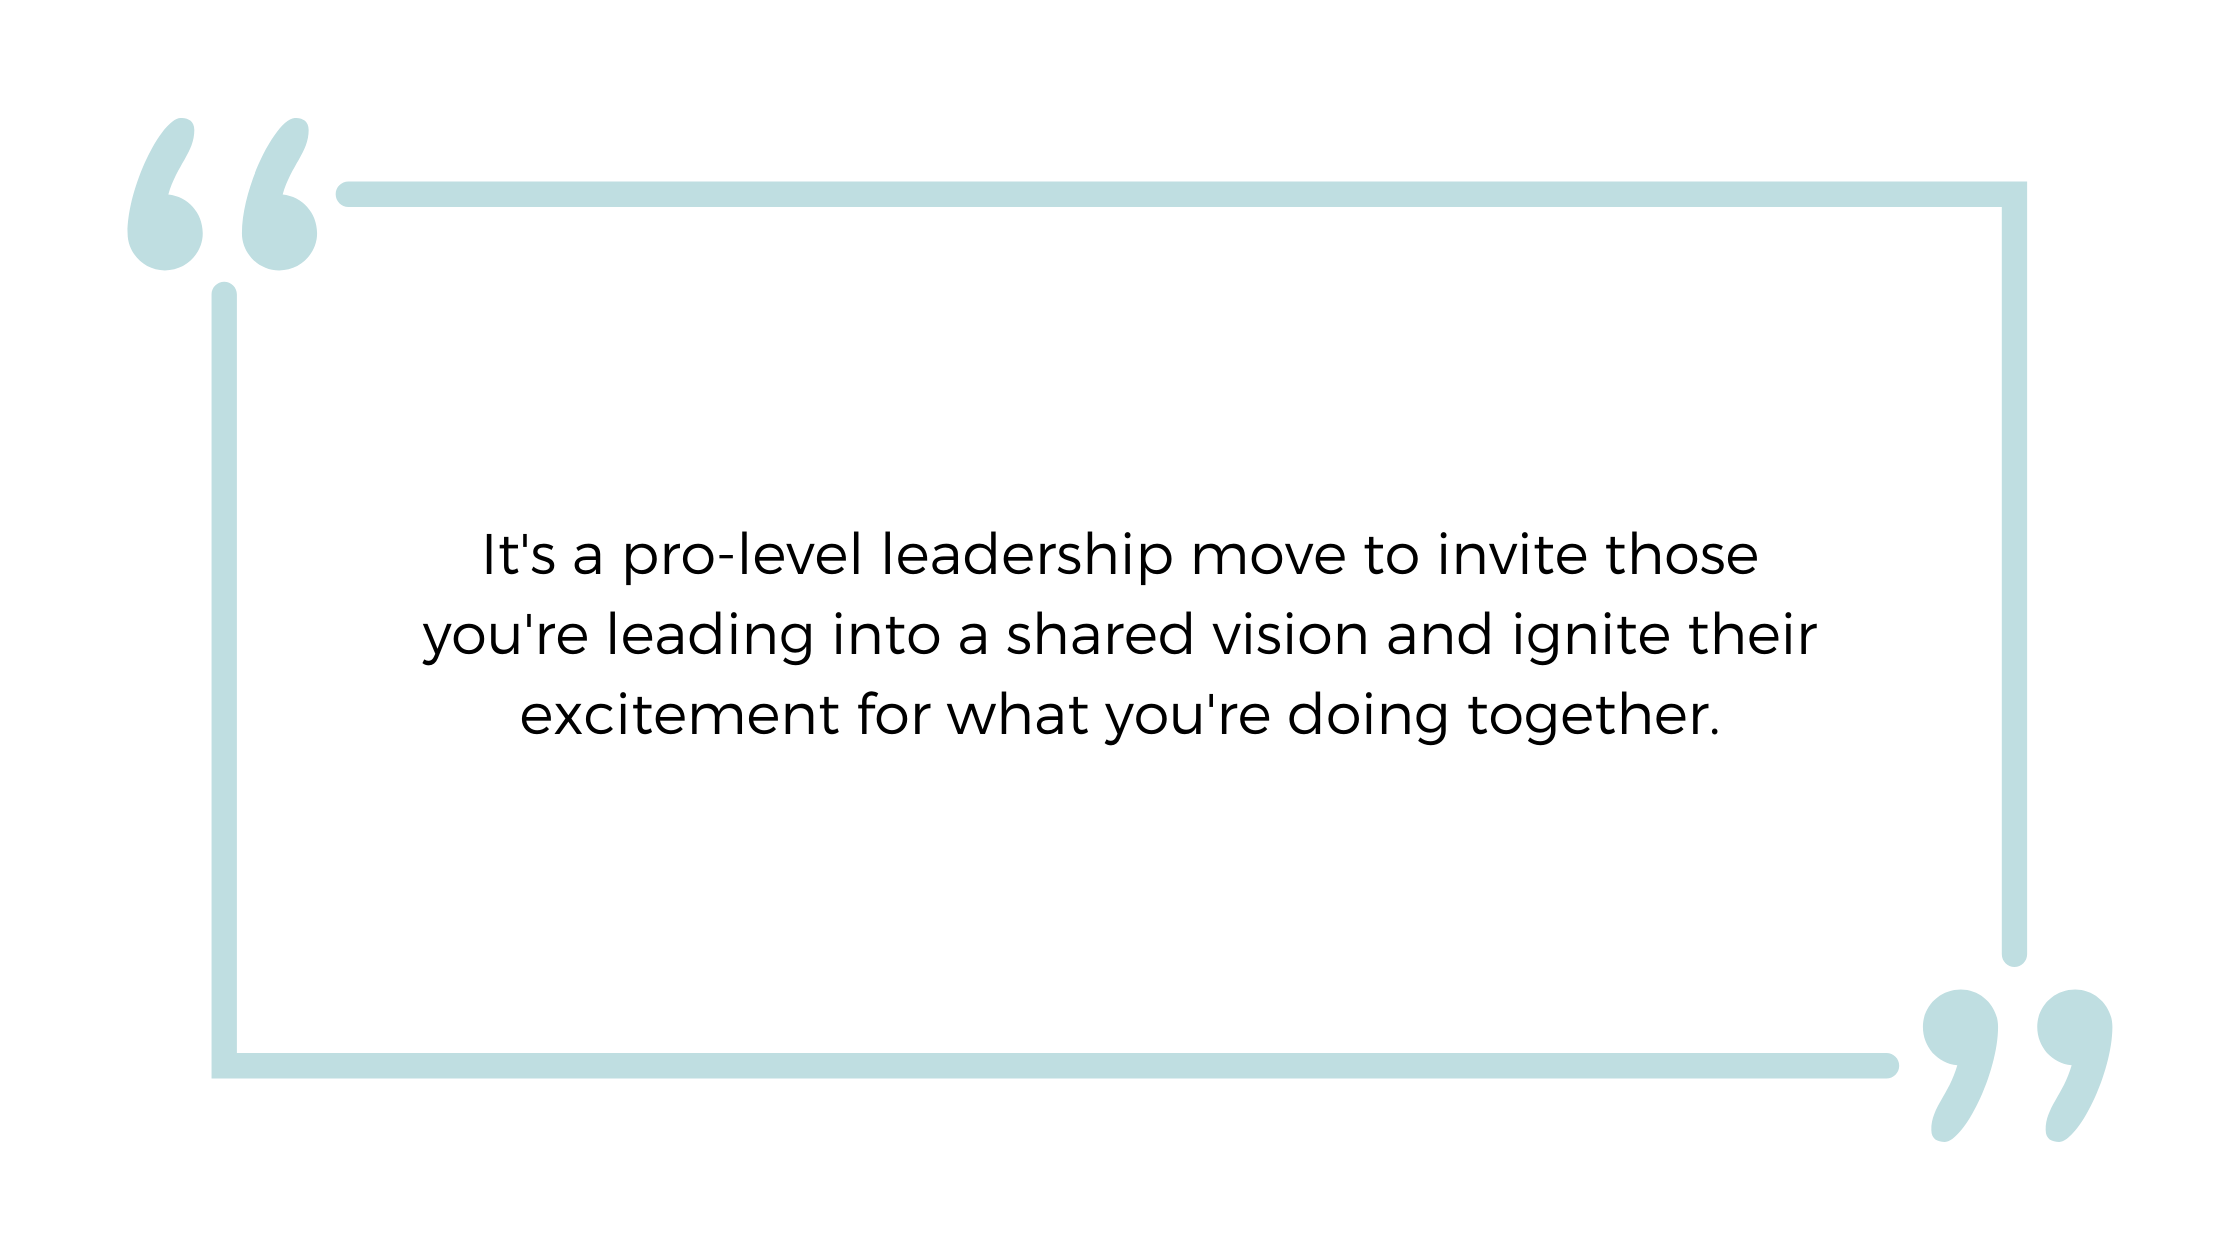 It's a pro-level leadership move to invite those you're leading into a shared vision and ignite their excitement for what you're doing together.